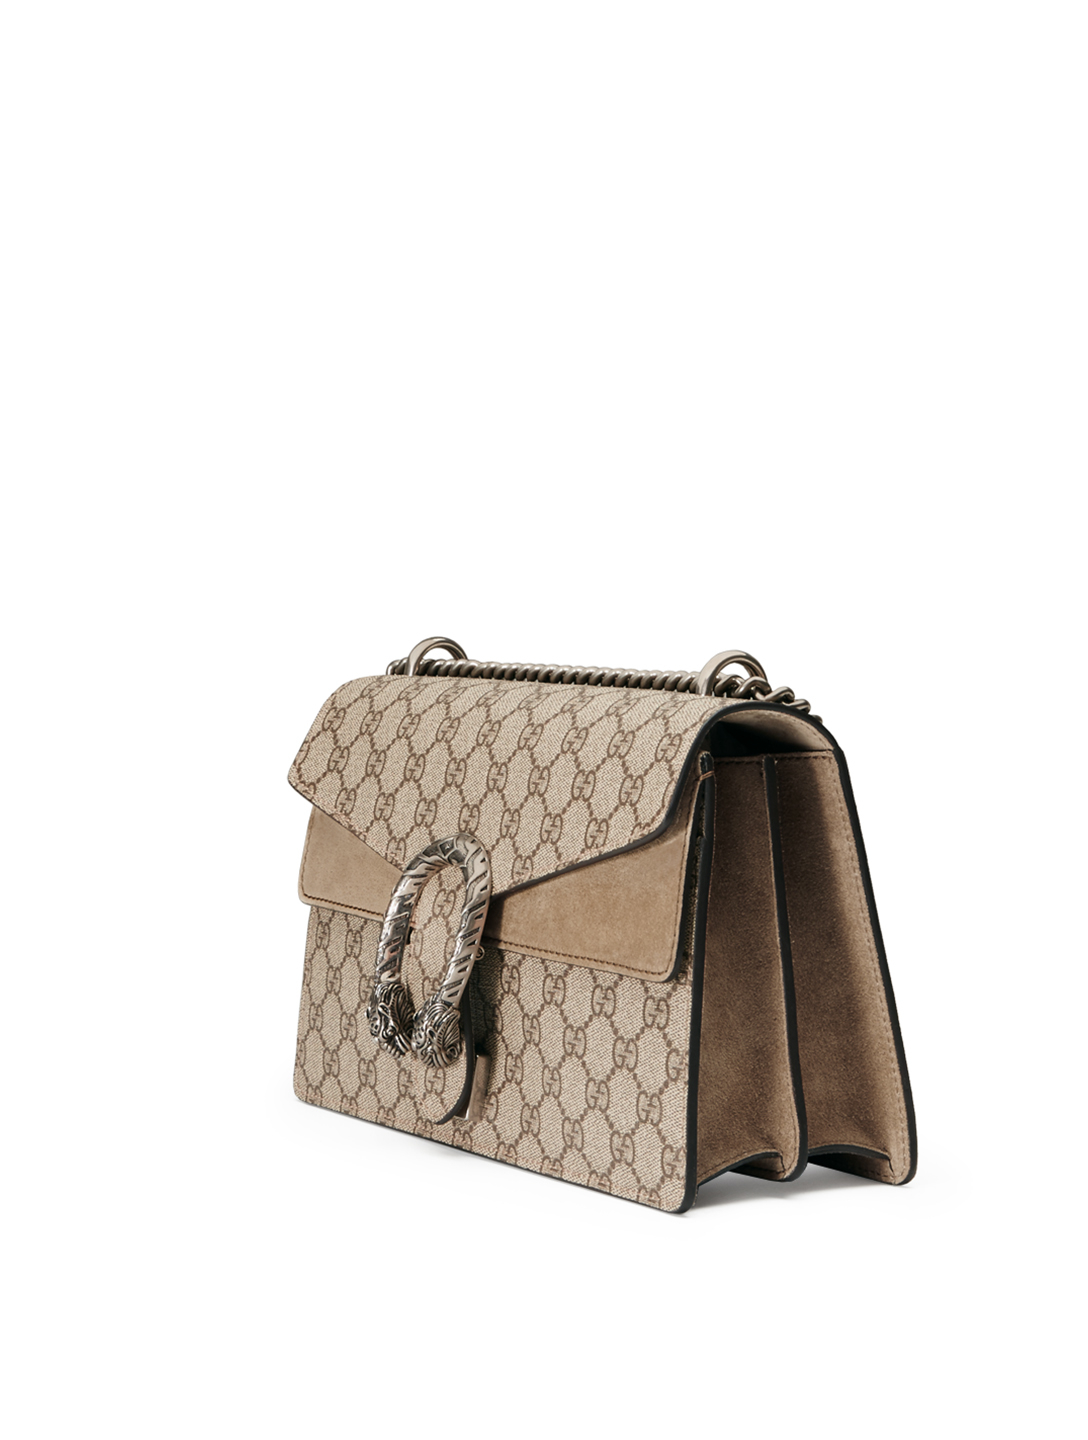 GUCCI Small Dionysus GG Supreme Shoulder Bag Women's Beige